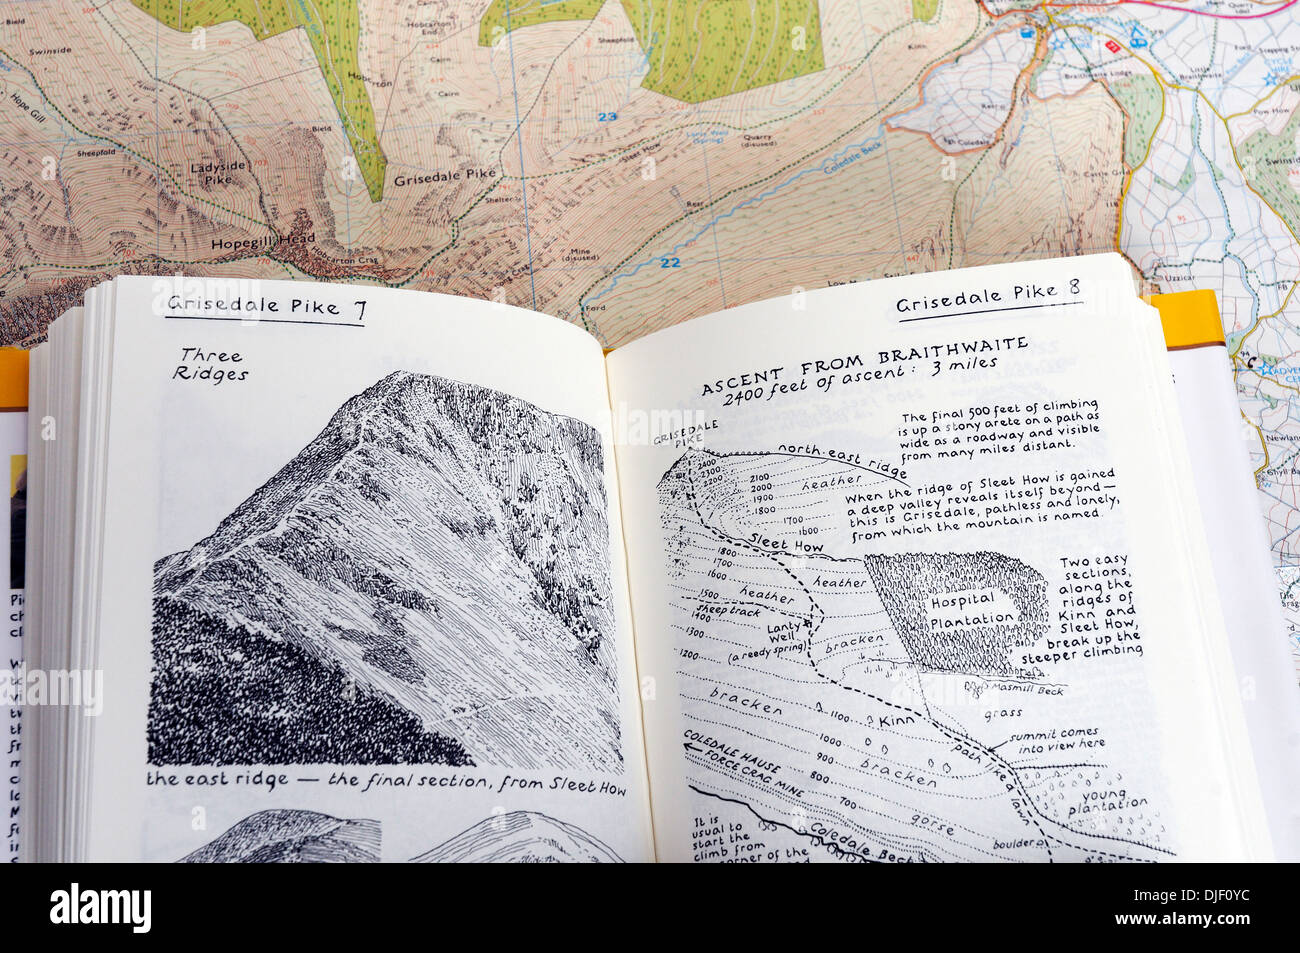 Map Of Nw England.Wainwright Walking Guide To The Lake District Of Nw England On A